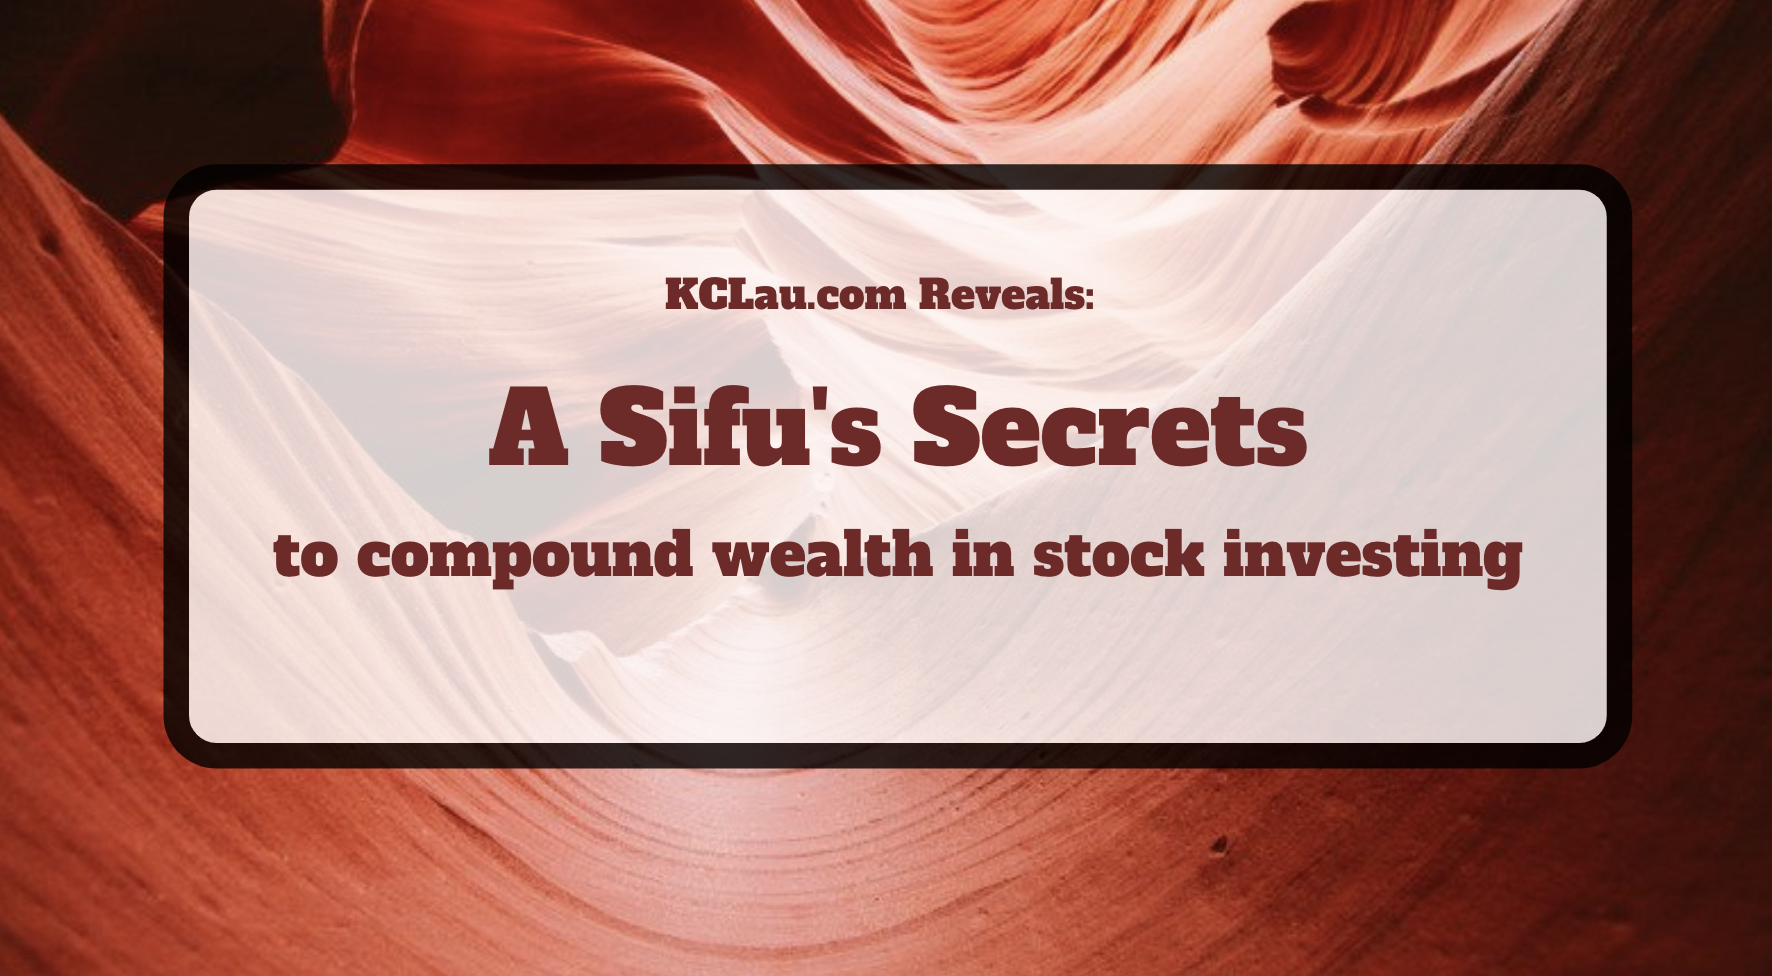 Revealing a Sifu's Secrets to  Compound Wealth through Savvy Stock Investing